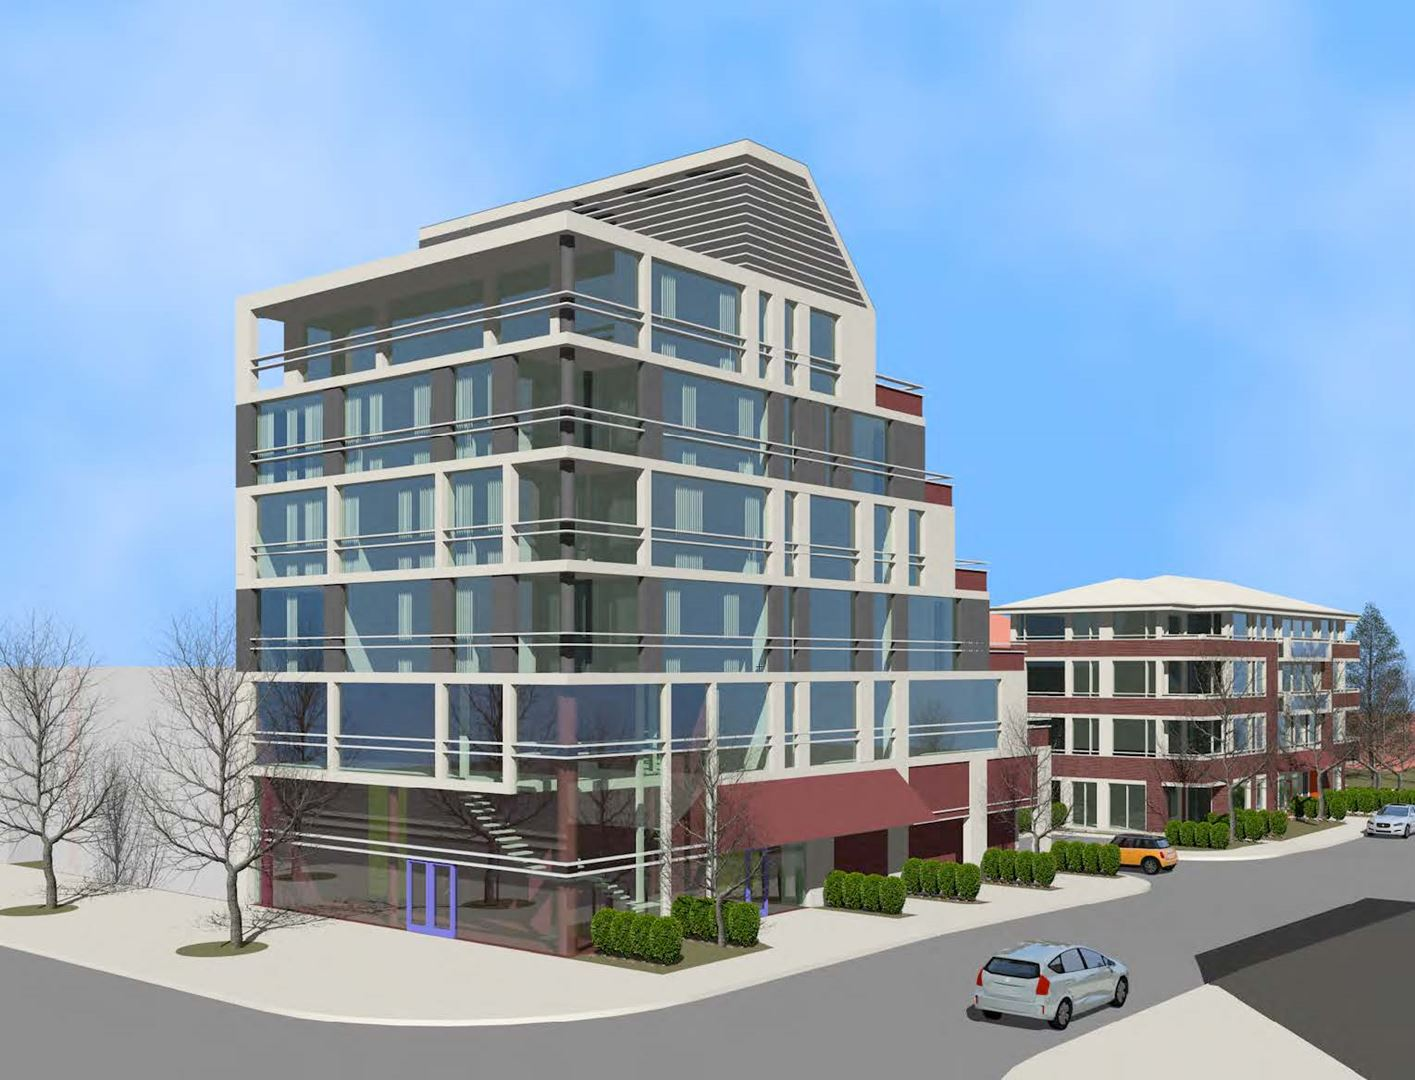 Exterior rendering of 3471 Lake Shore Boulevard West Condos in Etobicoke.